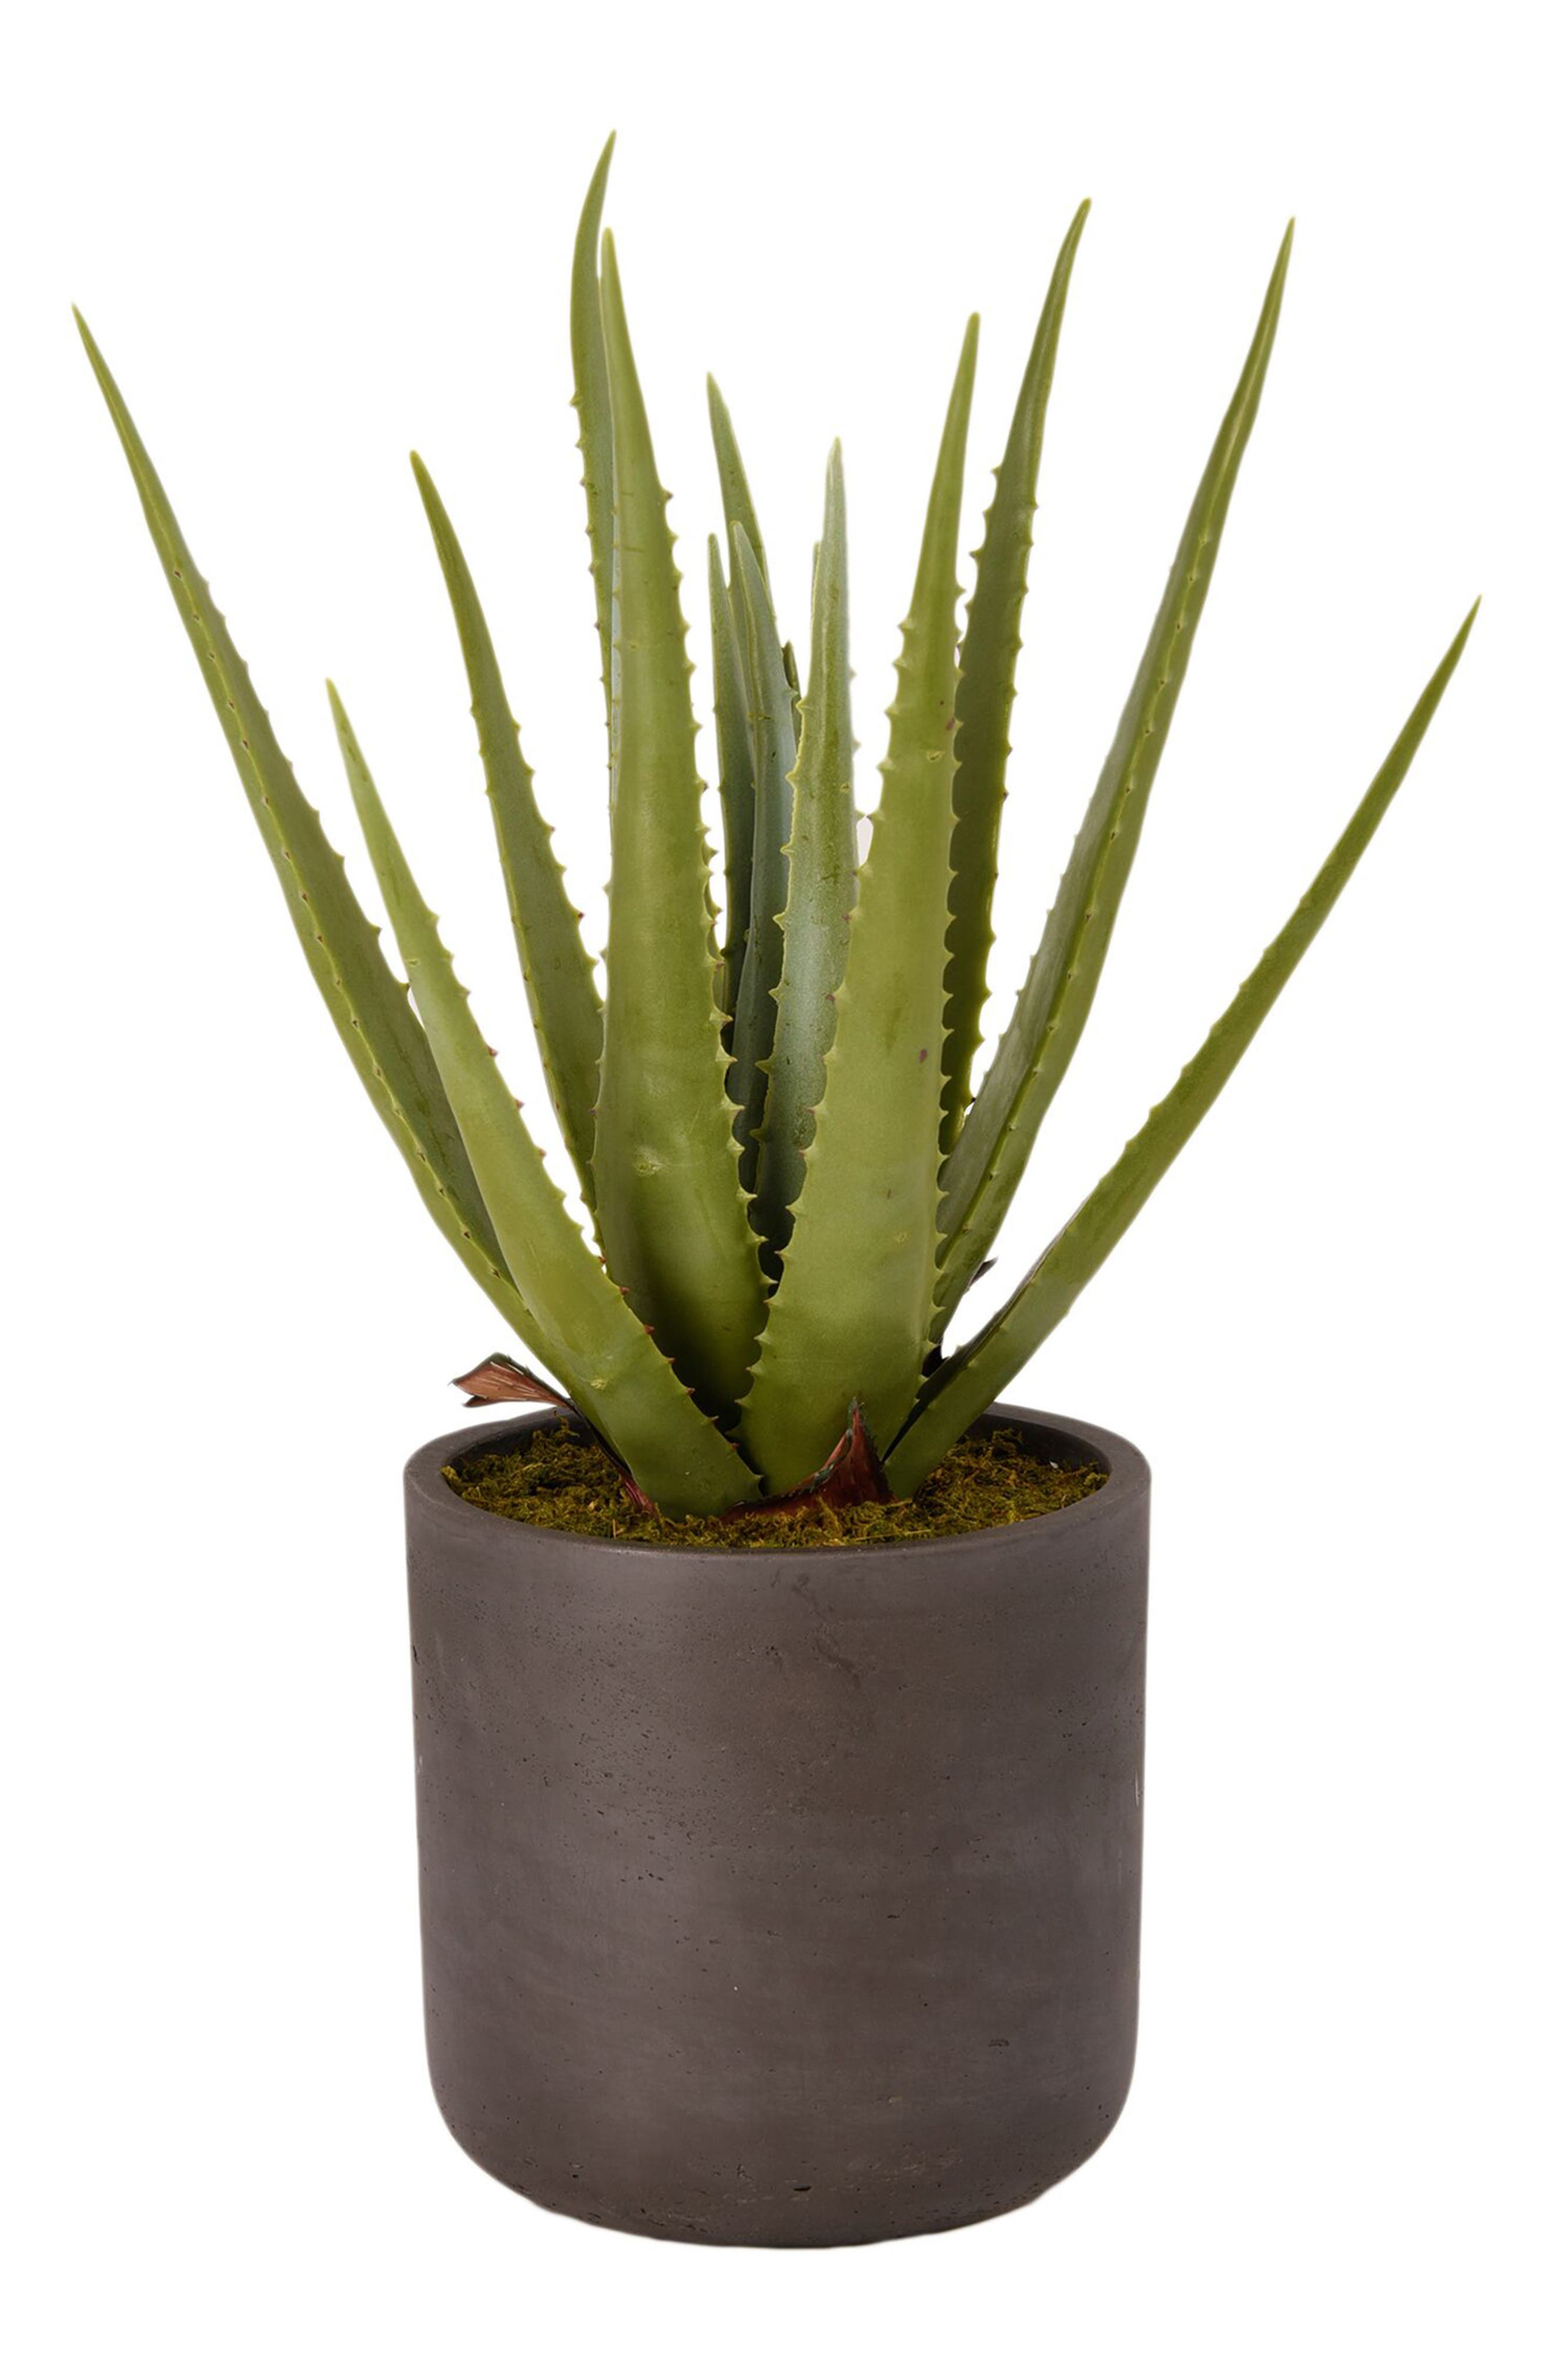 No need for a green thumb when you\\\'ve got this charming faux-aloe planter designed by real florists to add a touch of desert cheer to your minimalist decor. Style Name: Bloomr Desert Aloe Planter Decoration. Style Number: 5820995. Available in stores.